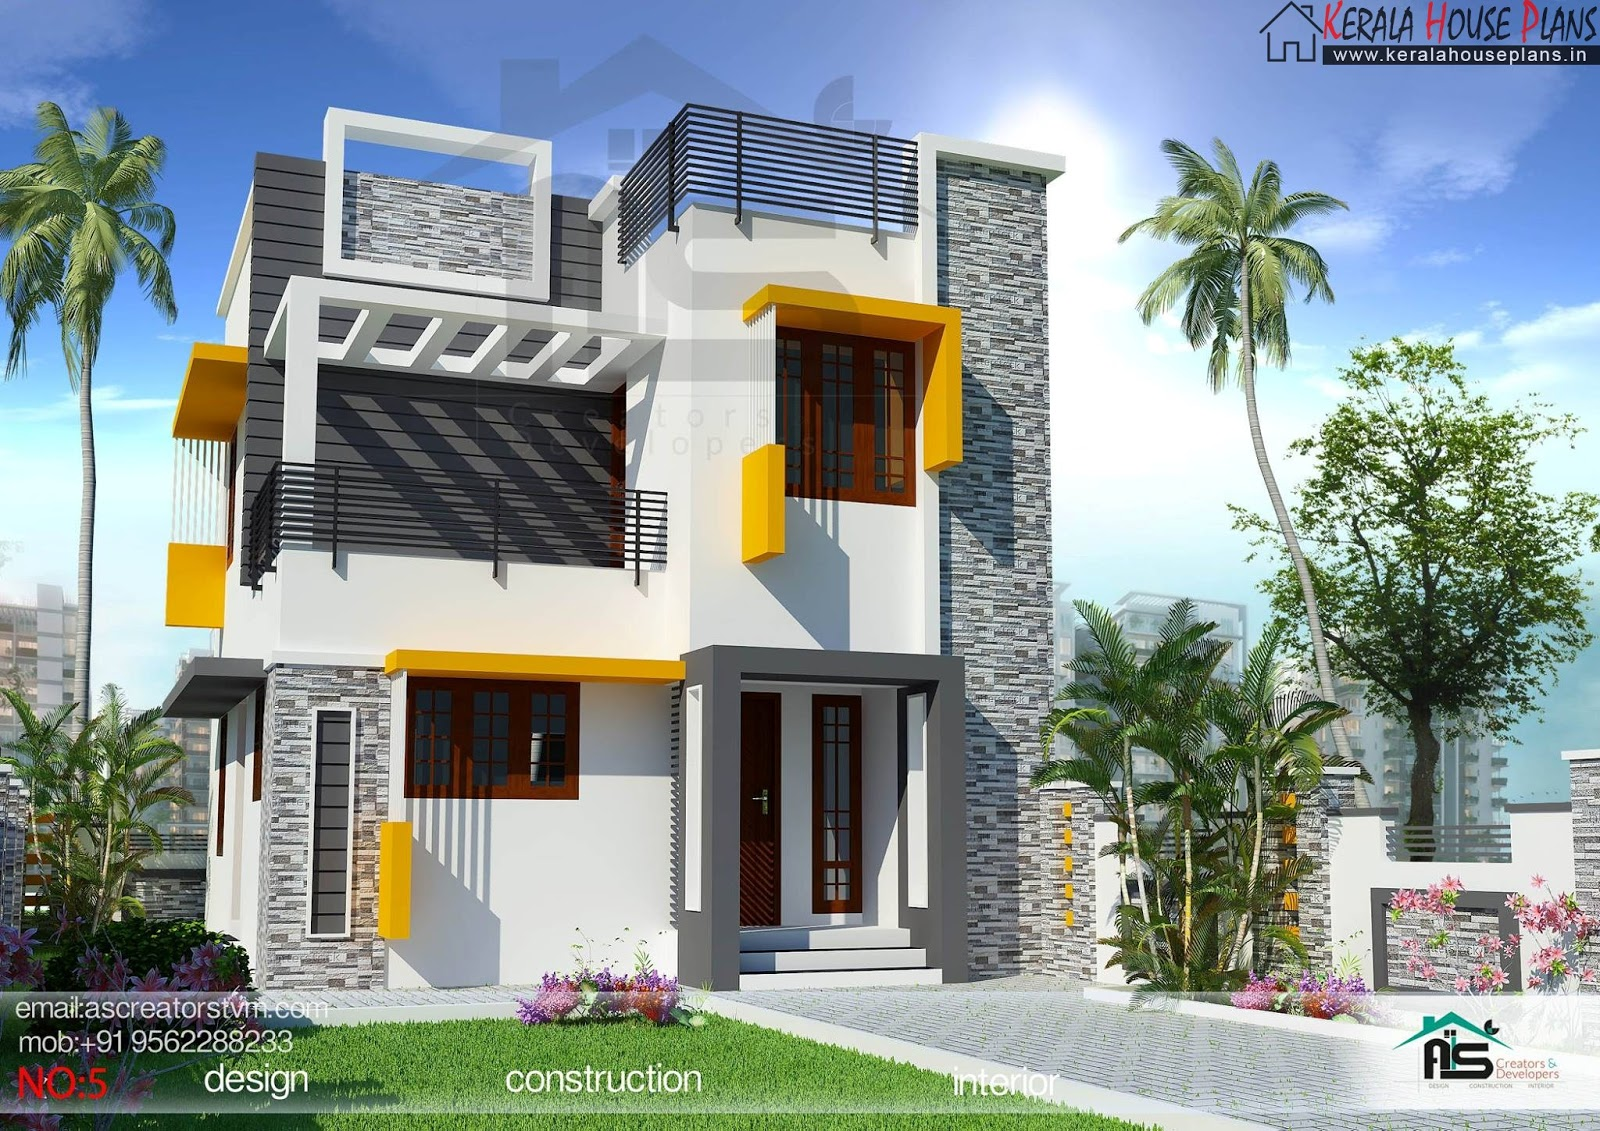 Three bedroom house plan kerala style kerala house plans 3 bedroom kerala house plans